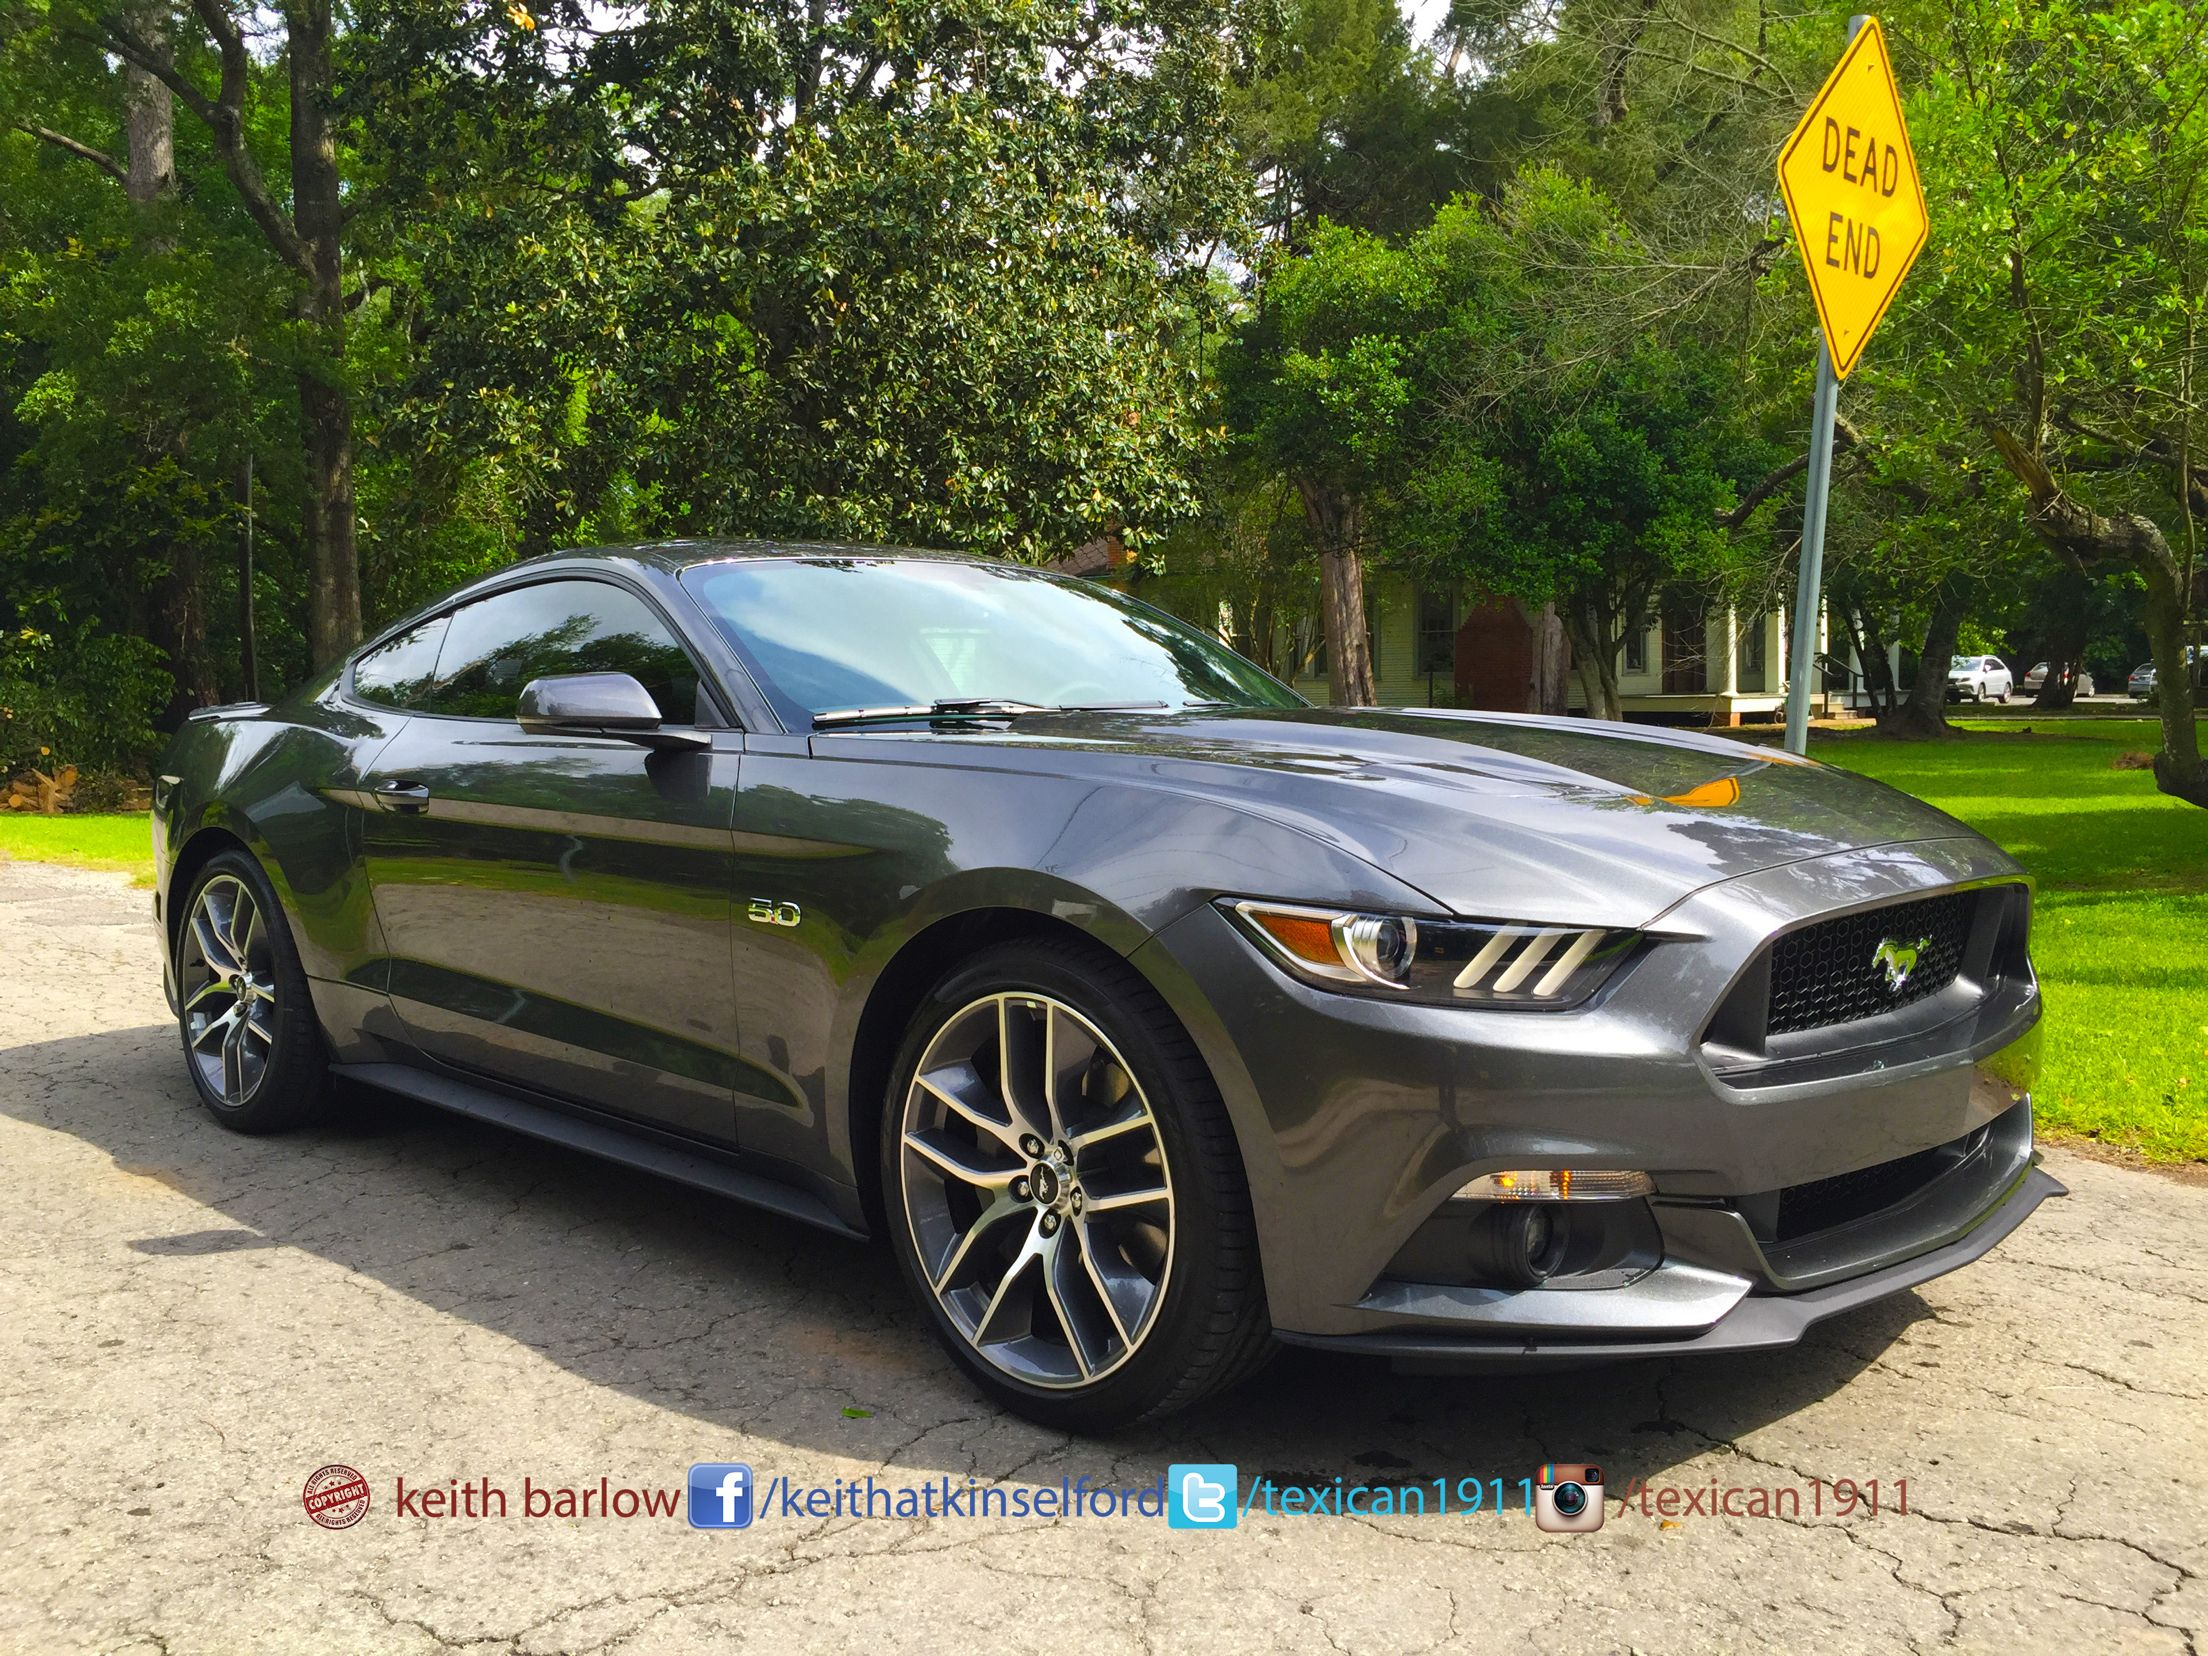 2015 Gt Mustang Ford 401a 20 Foundry Wheels In Magnetic